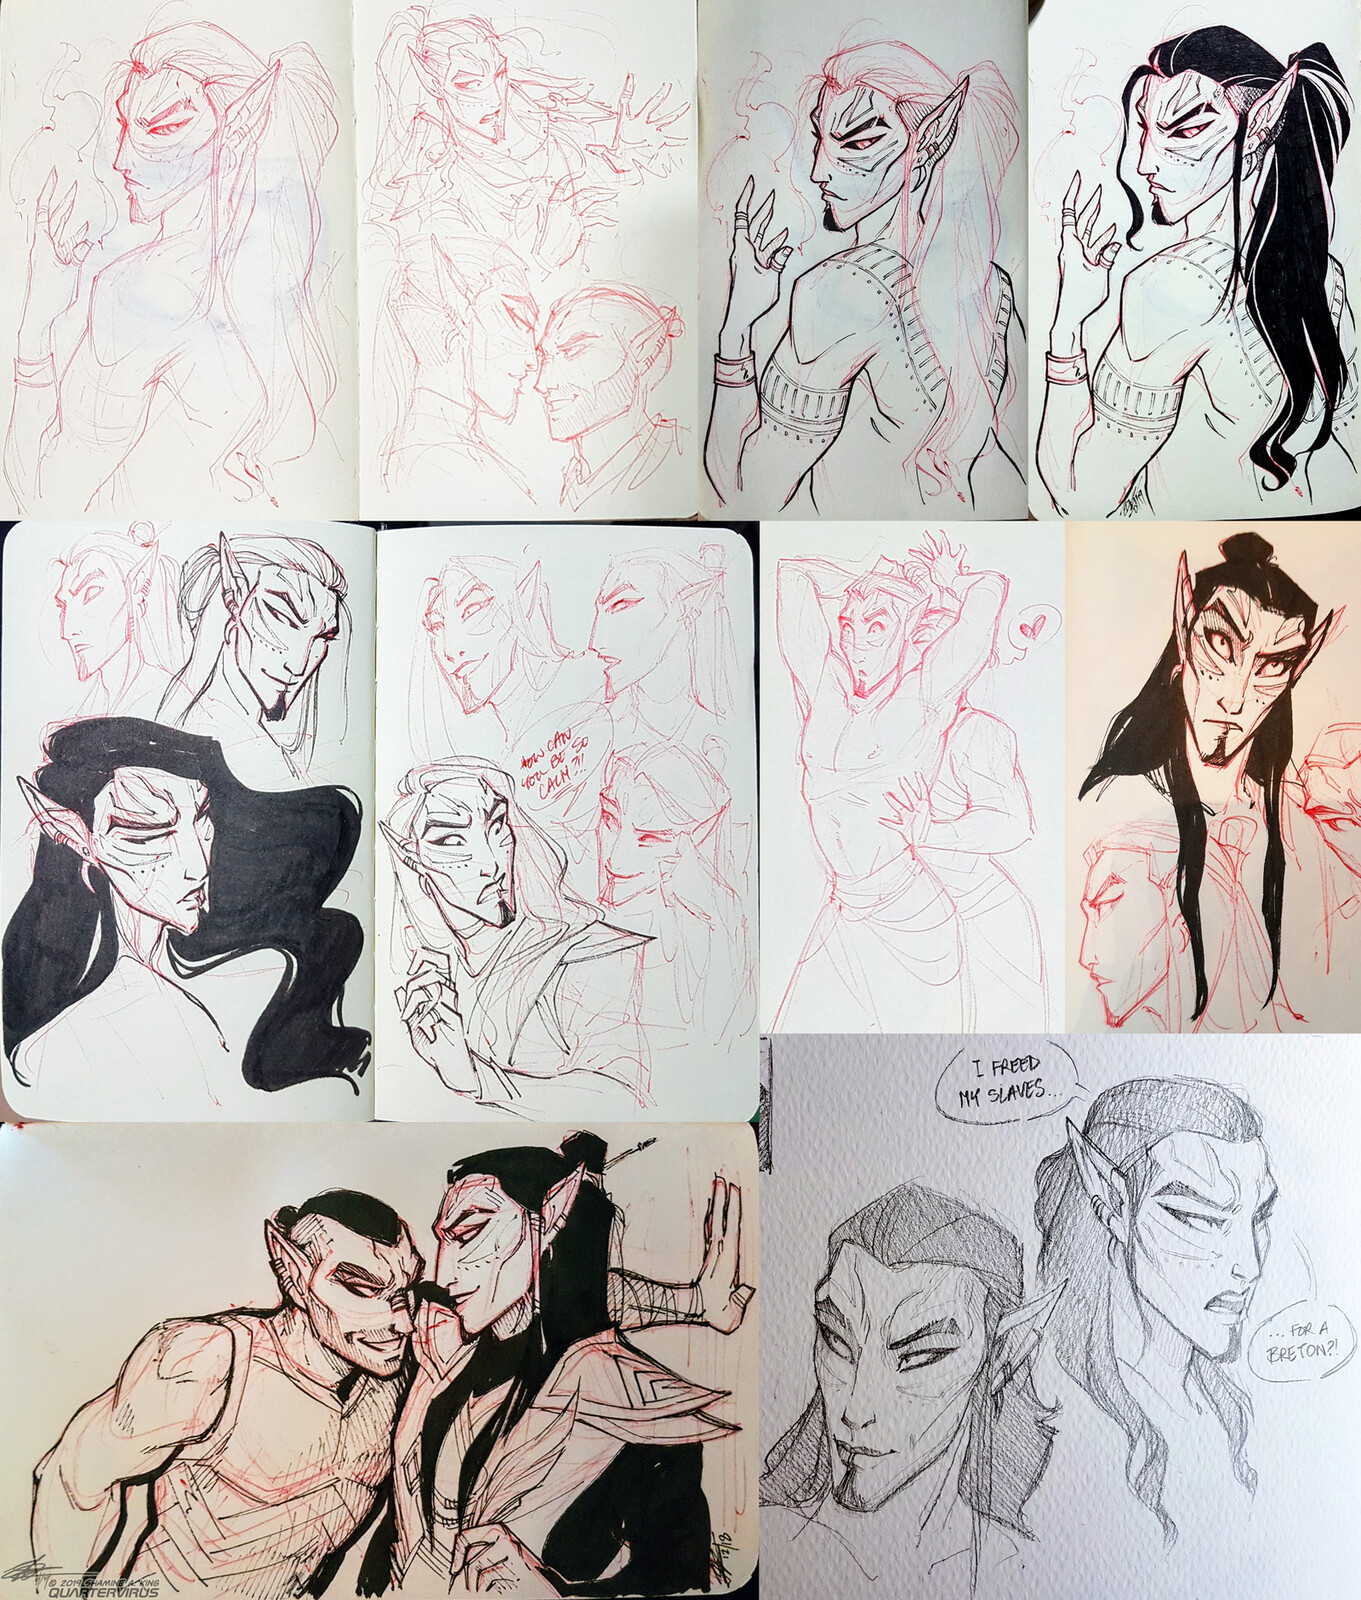 Older sketches from the beginning of the year 2019